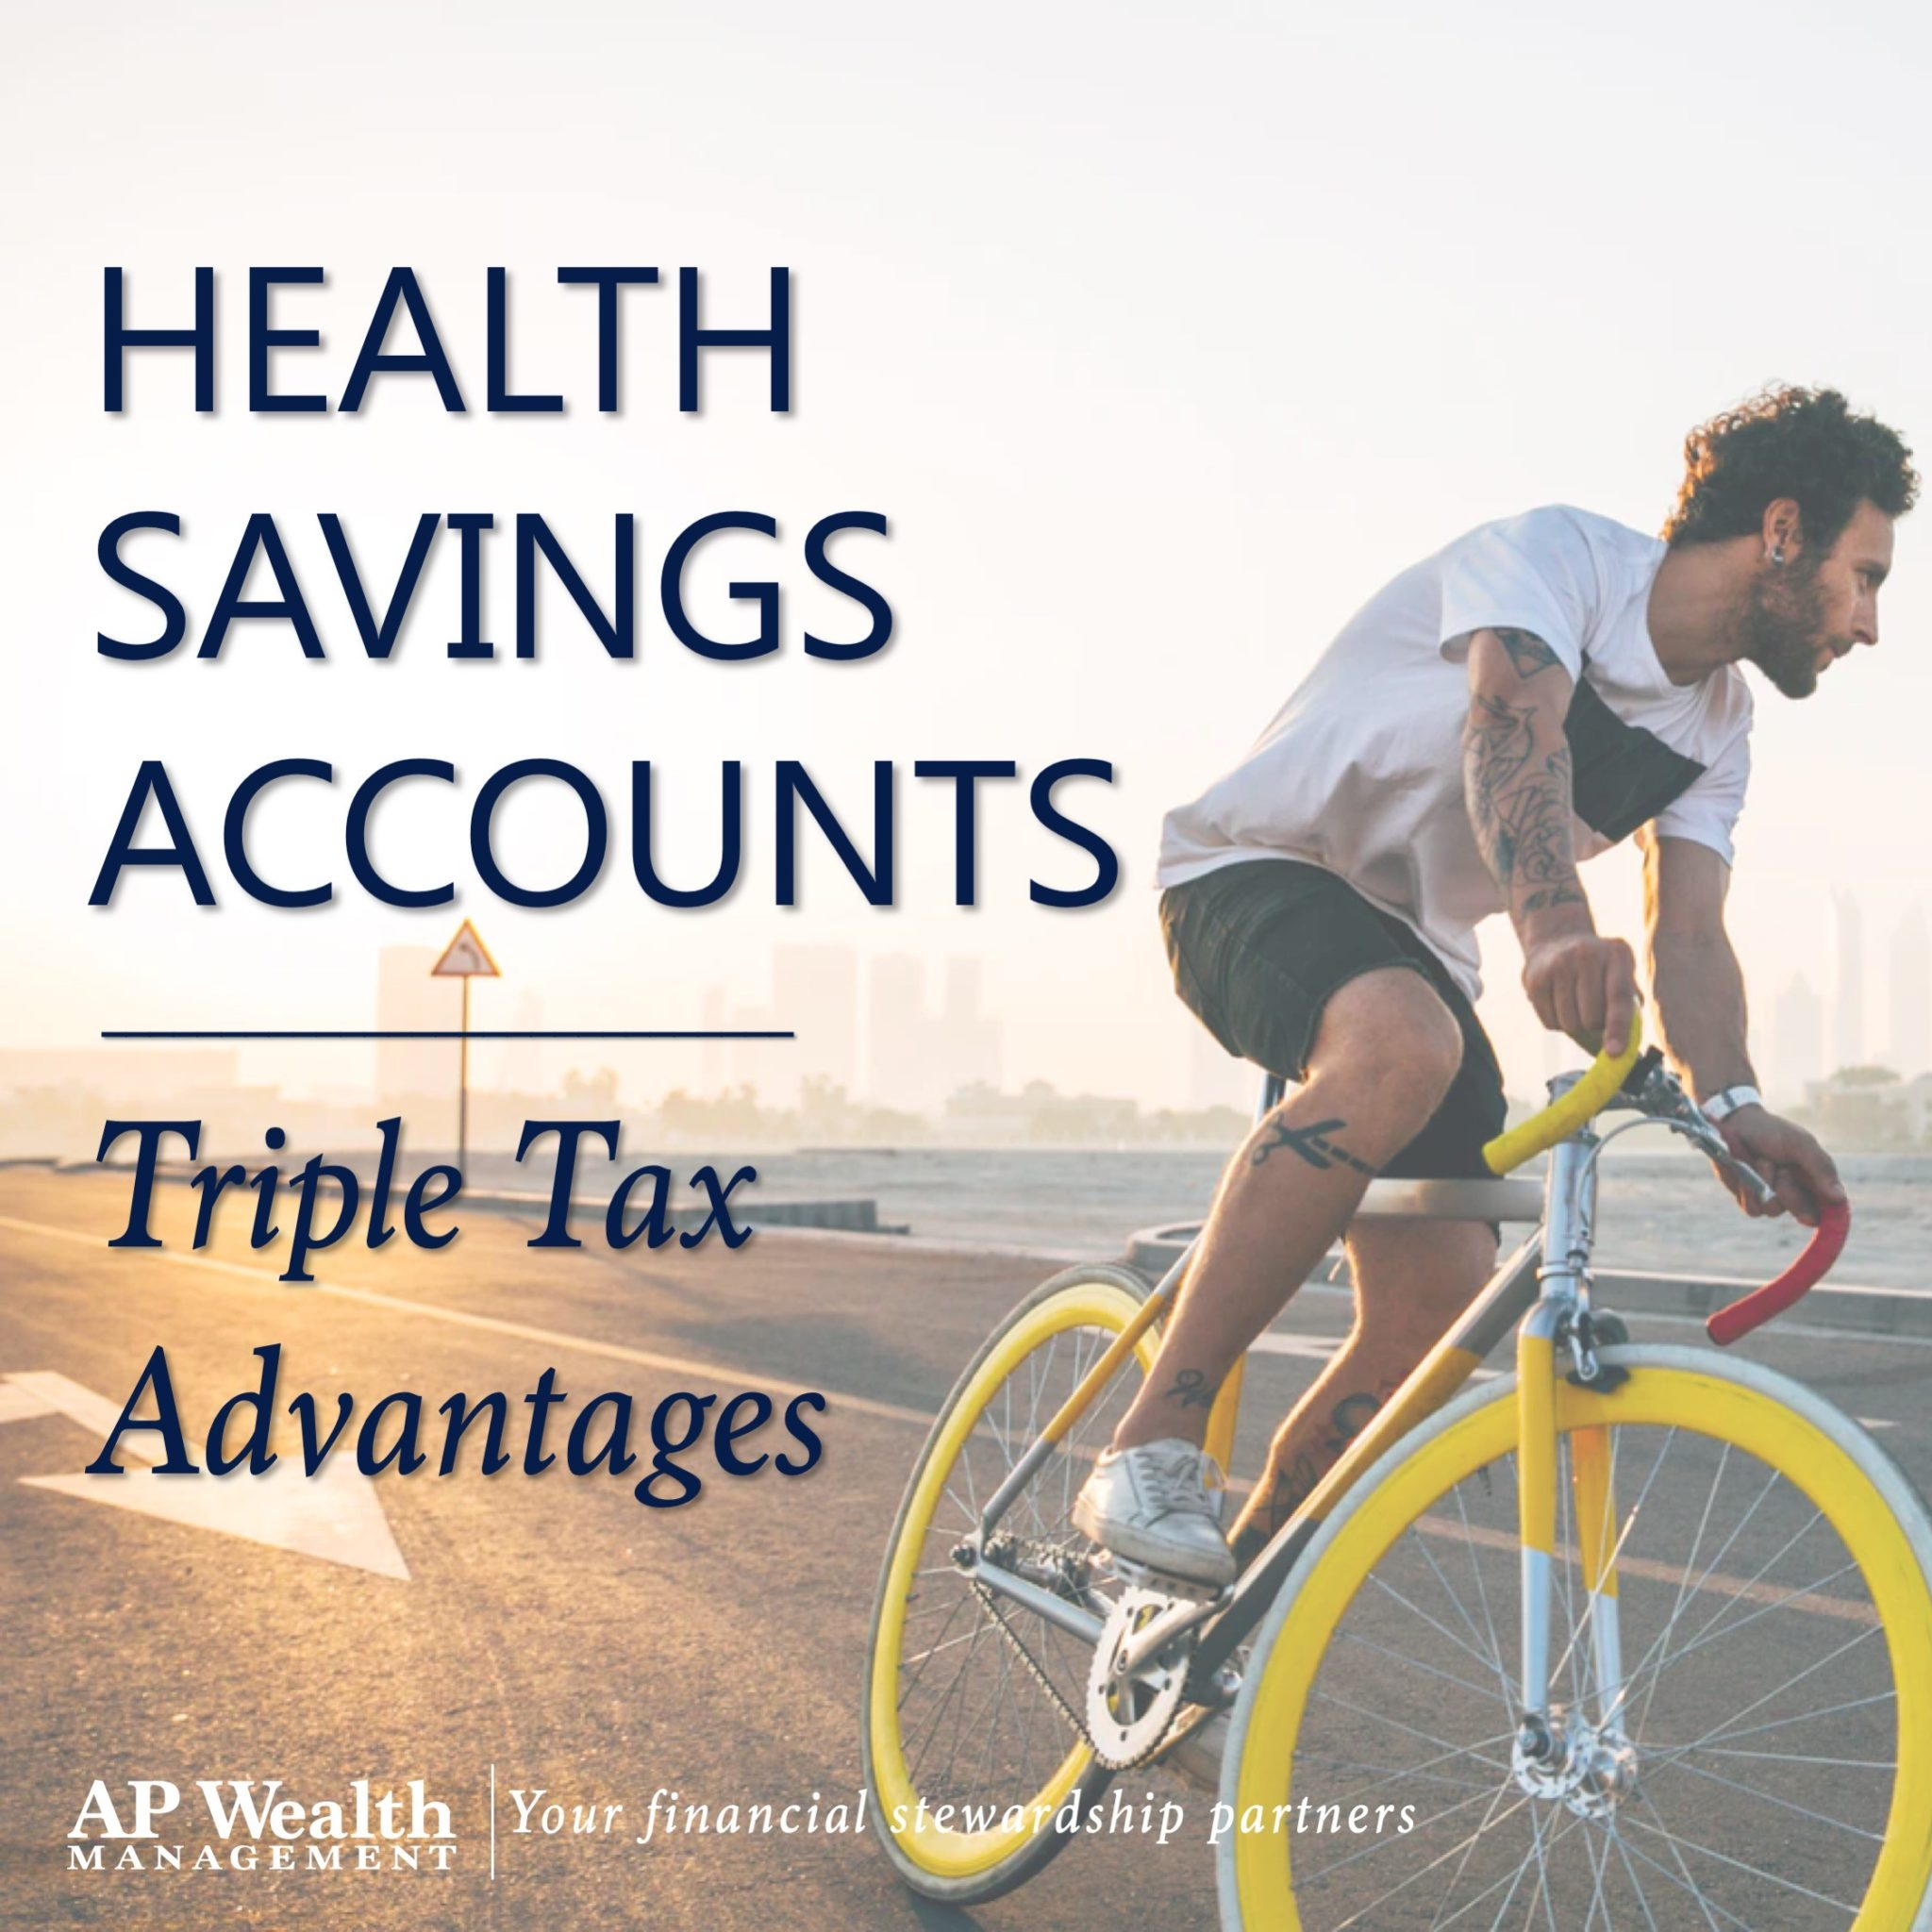 Health Savings Account Triple Tax Advantage